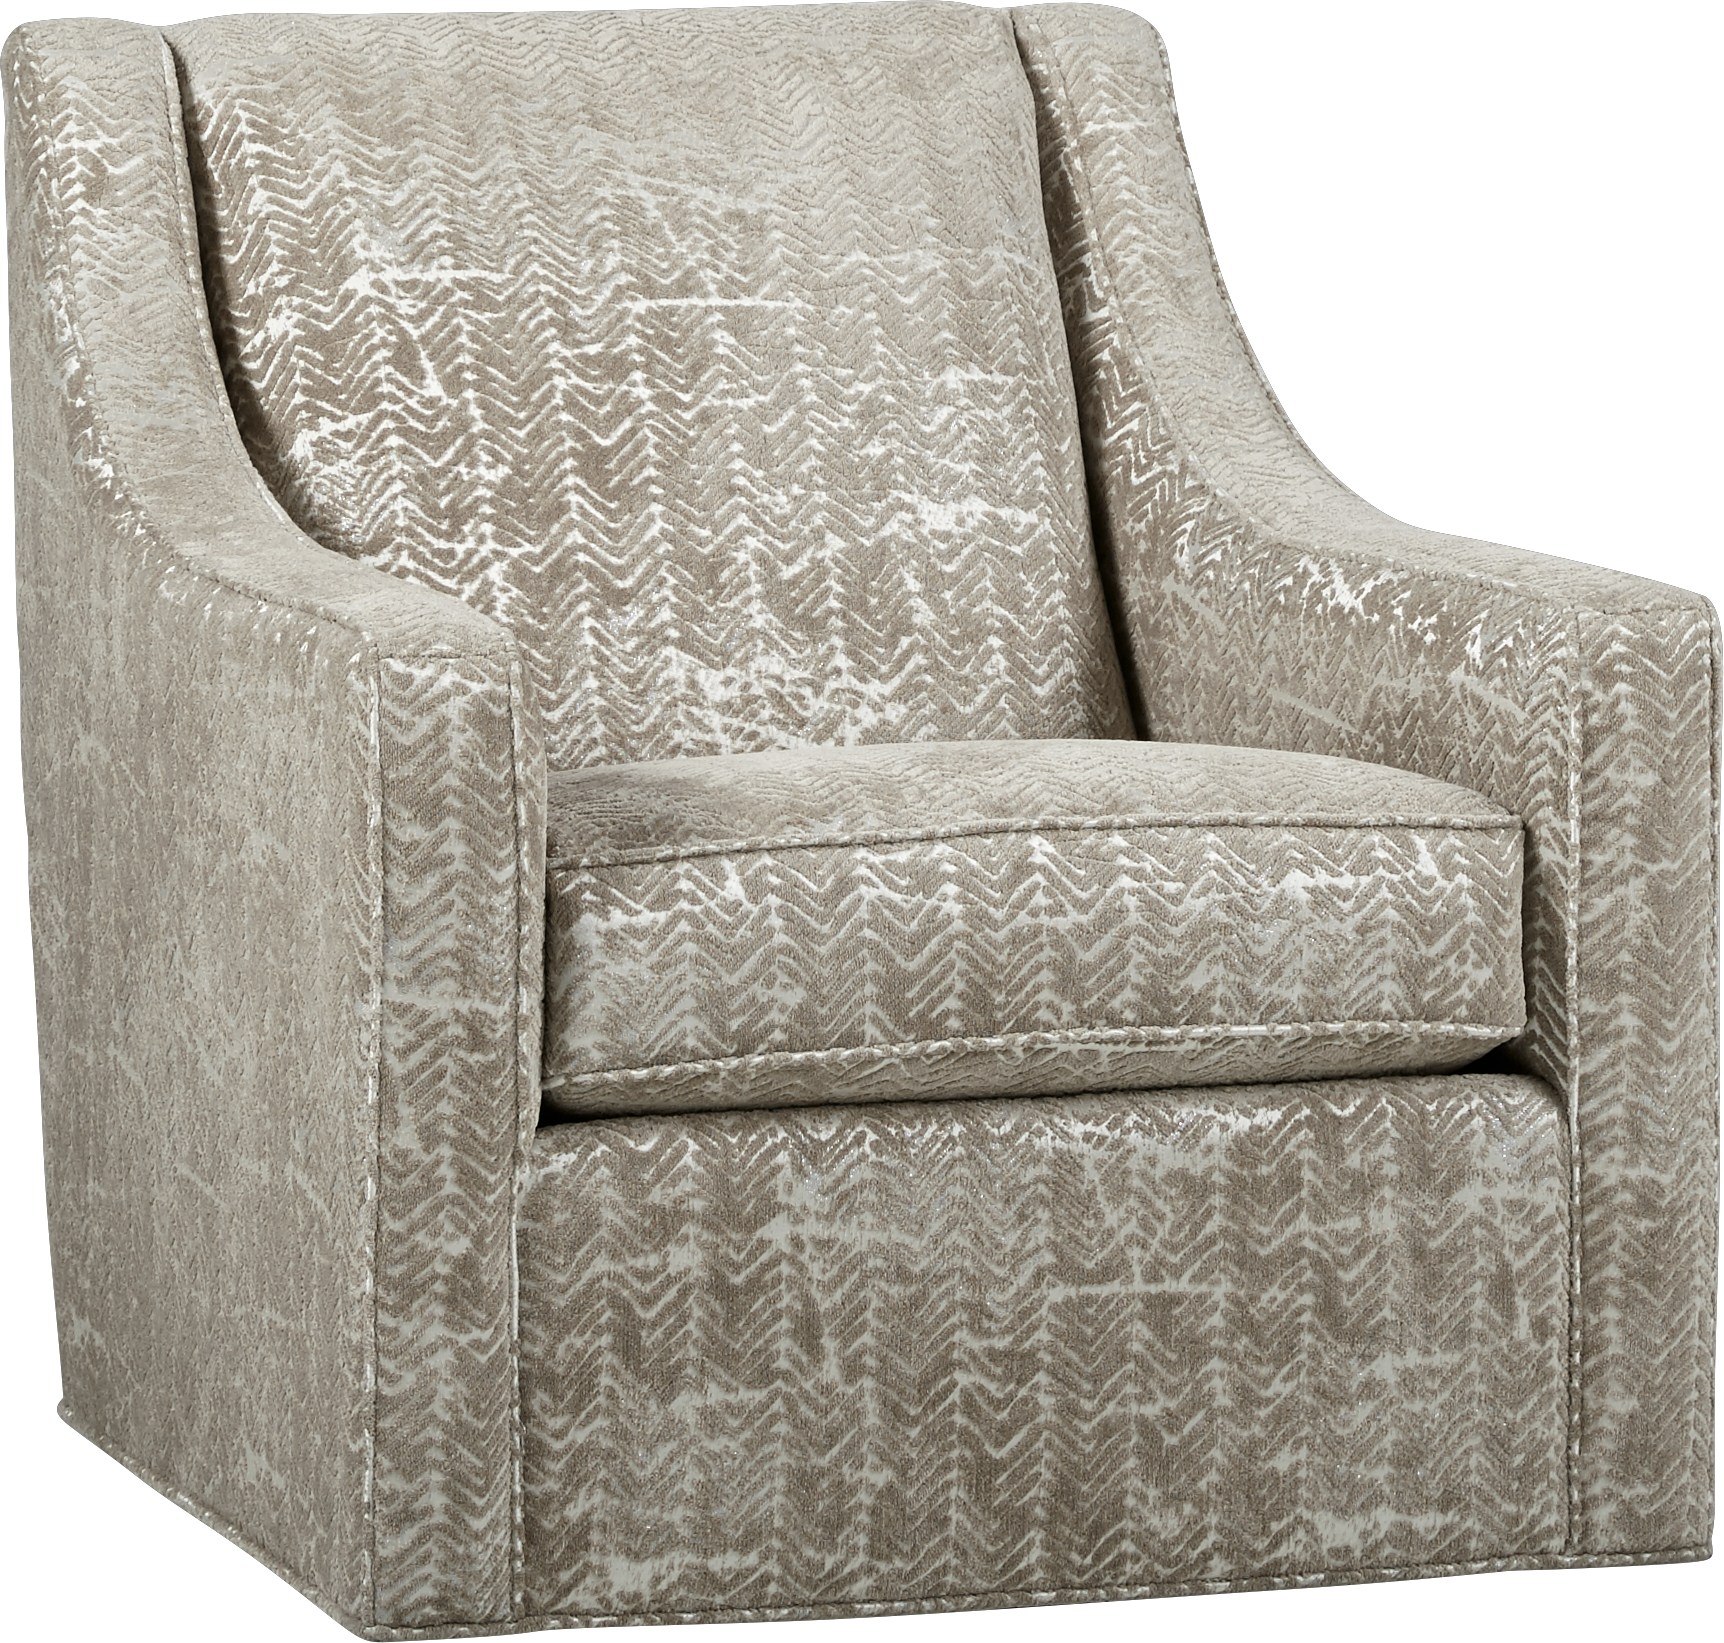 Cindy Crawford Home Pacific Harbor Beige Accent Chair – Accent Intended For Harbor Grey Swivel Accent Chairs (View 7 of 25)